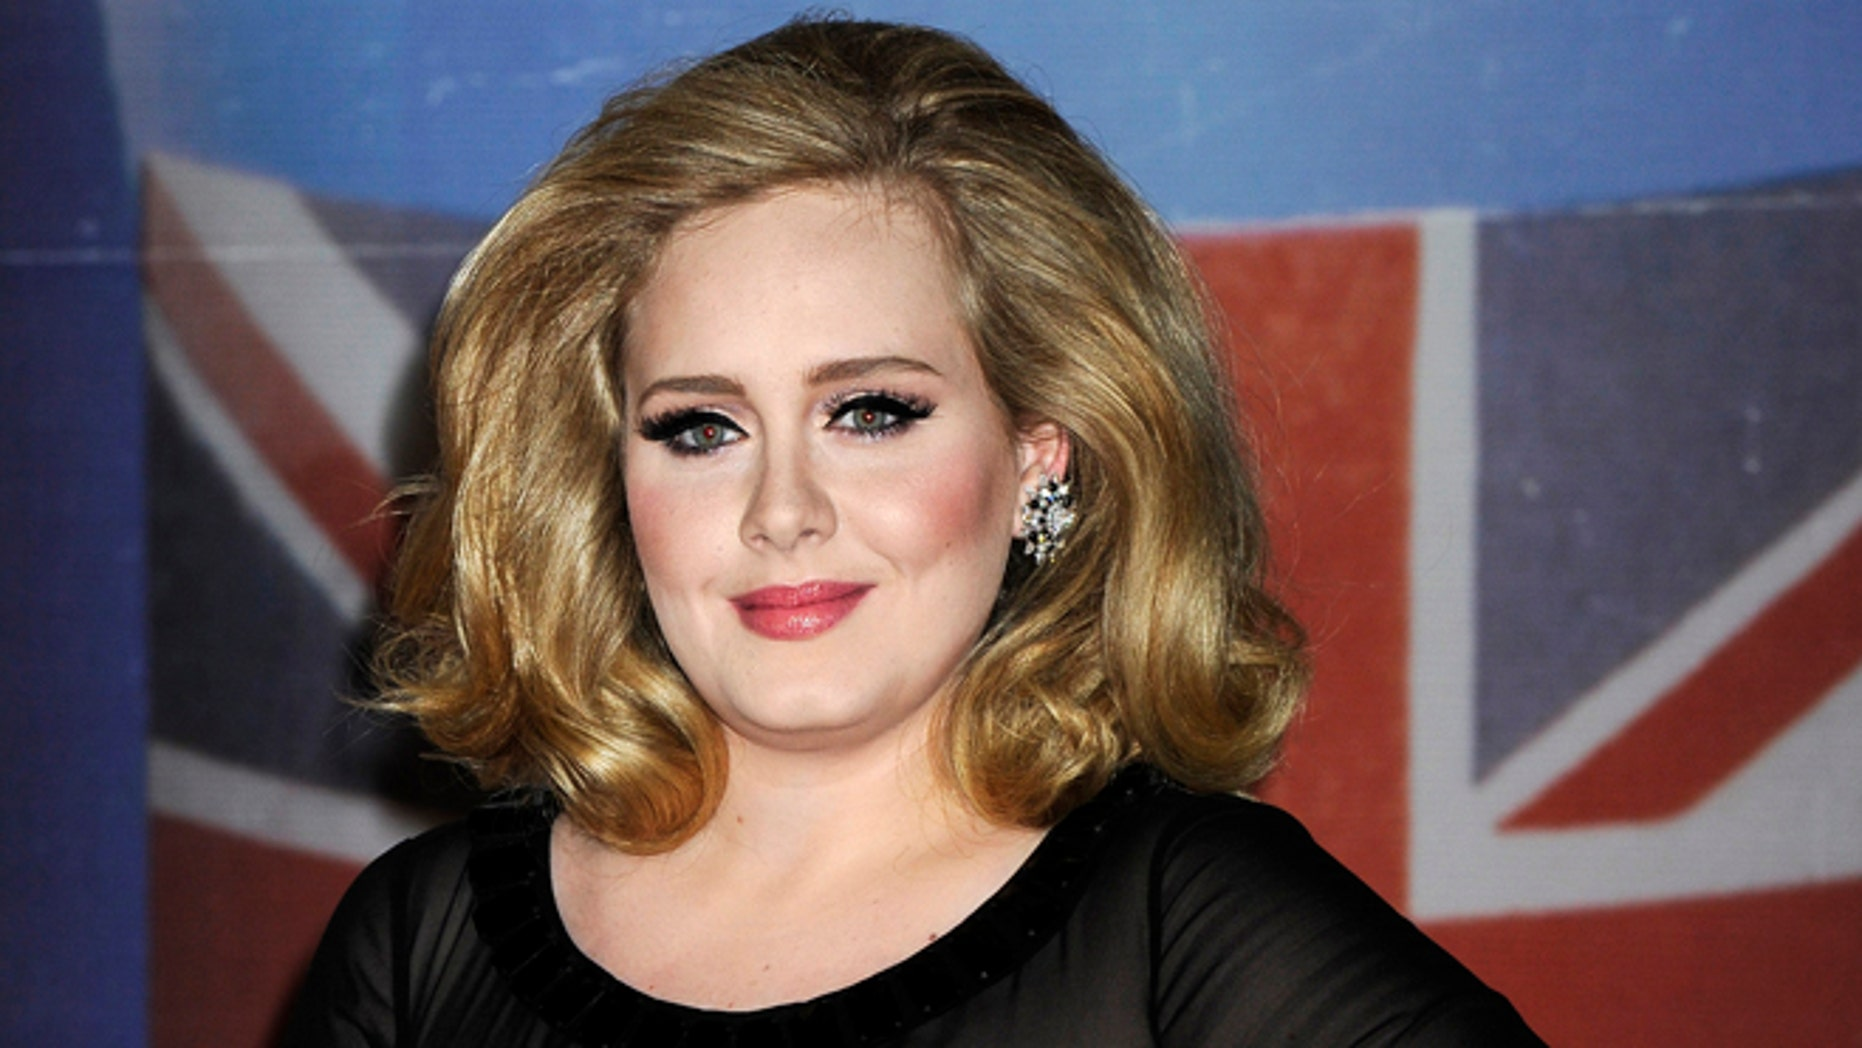 Feb. 21, 2012: In this file photo, performer Adele arrives for the Brit Awards 2012 at the O2 Arena in London.